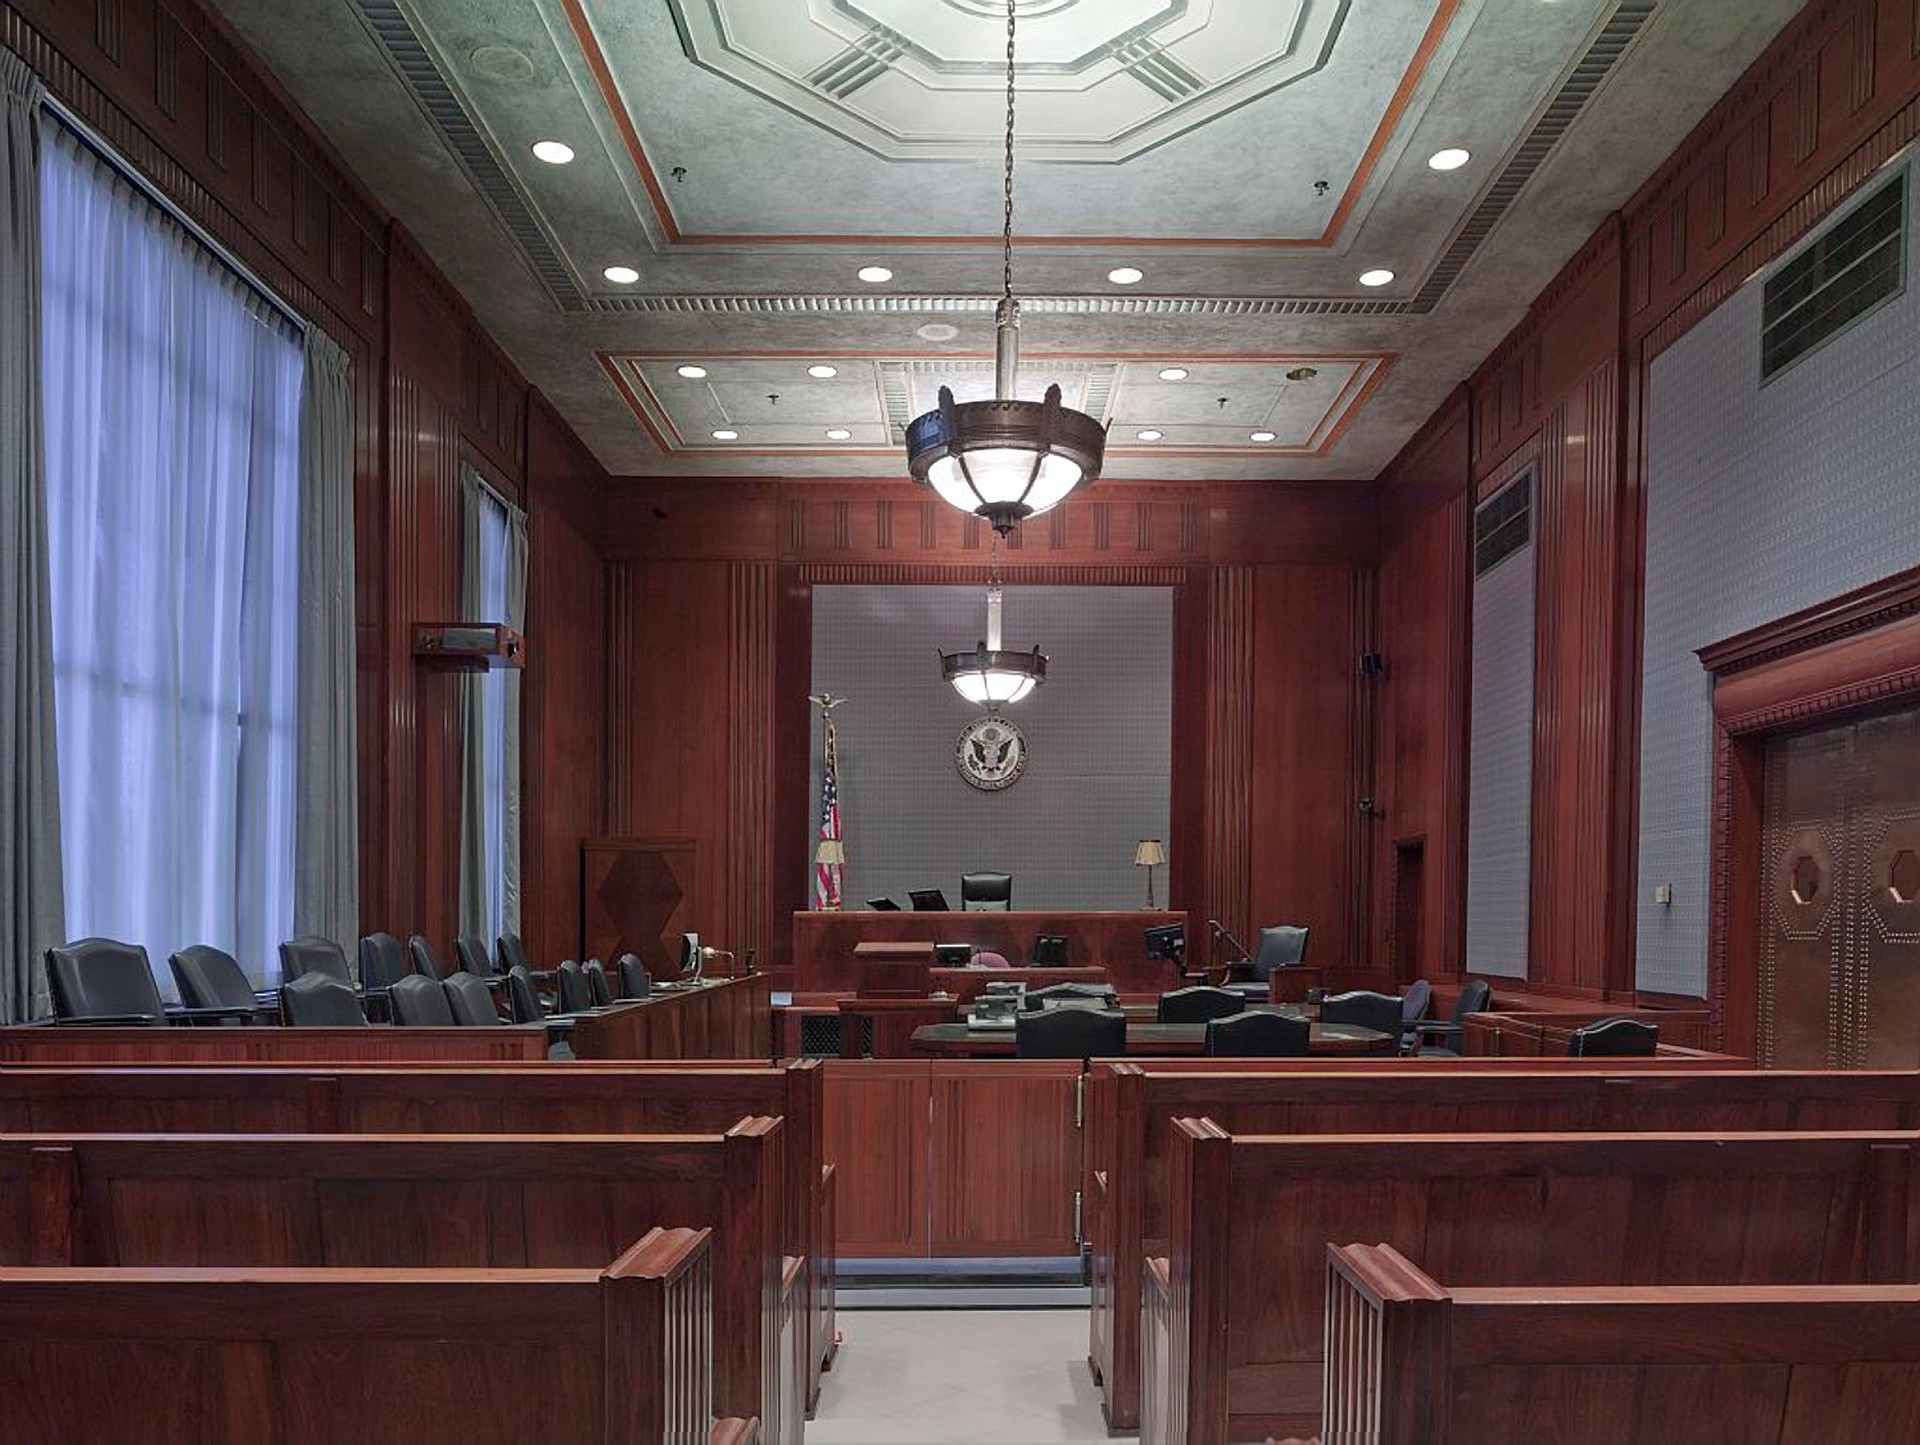 Courtroom where civil and criminal cases are tried